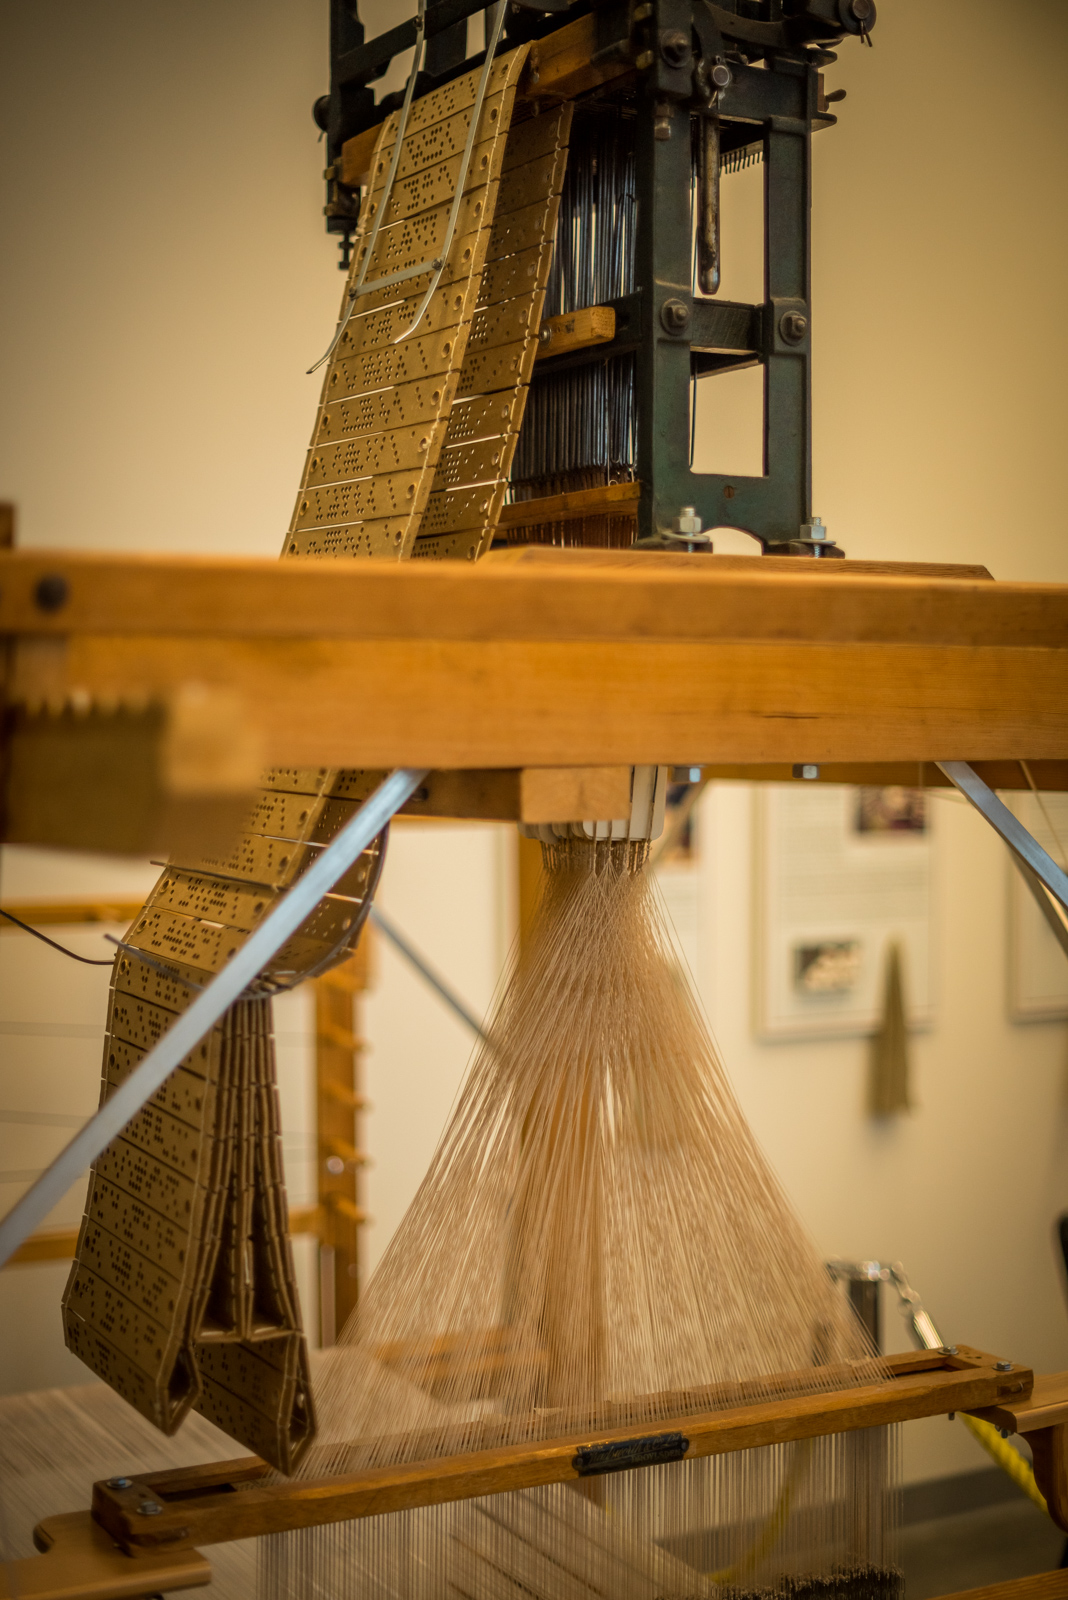 Detail of the Jacquard Loom situated in the Honey Hooser Textile Centre